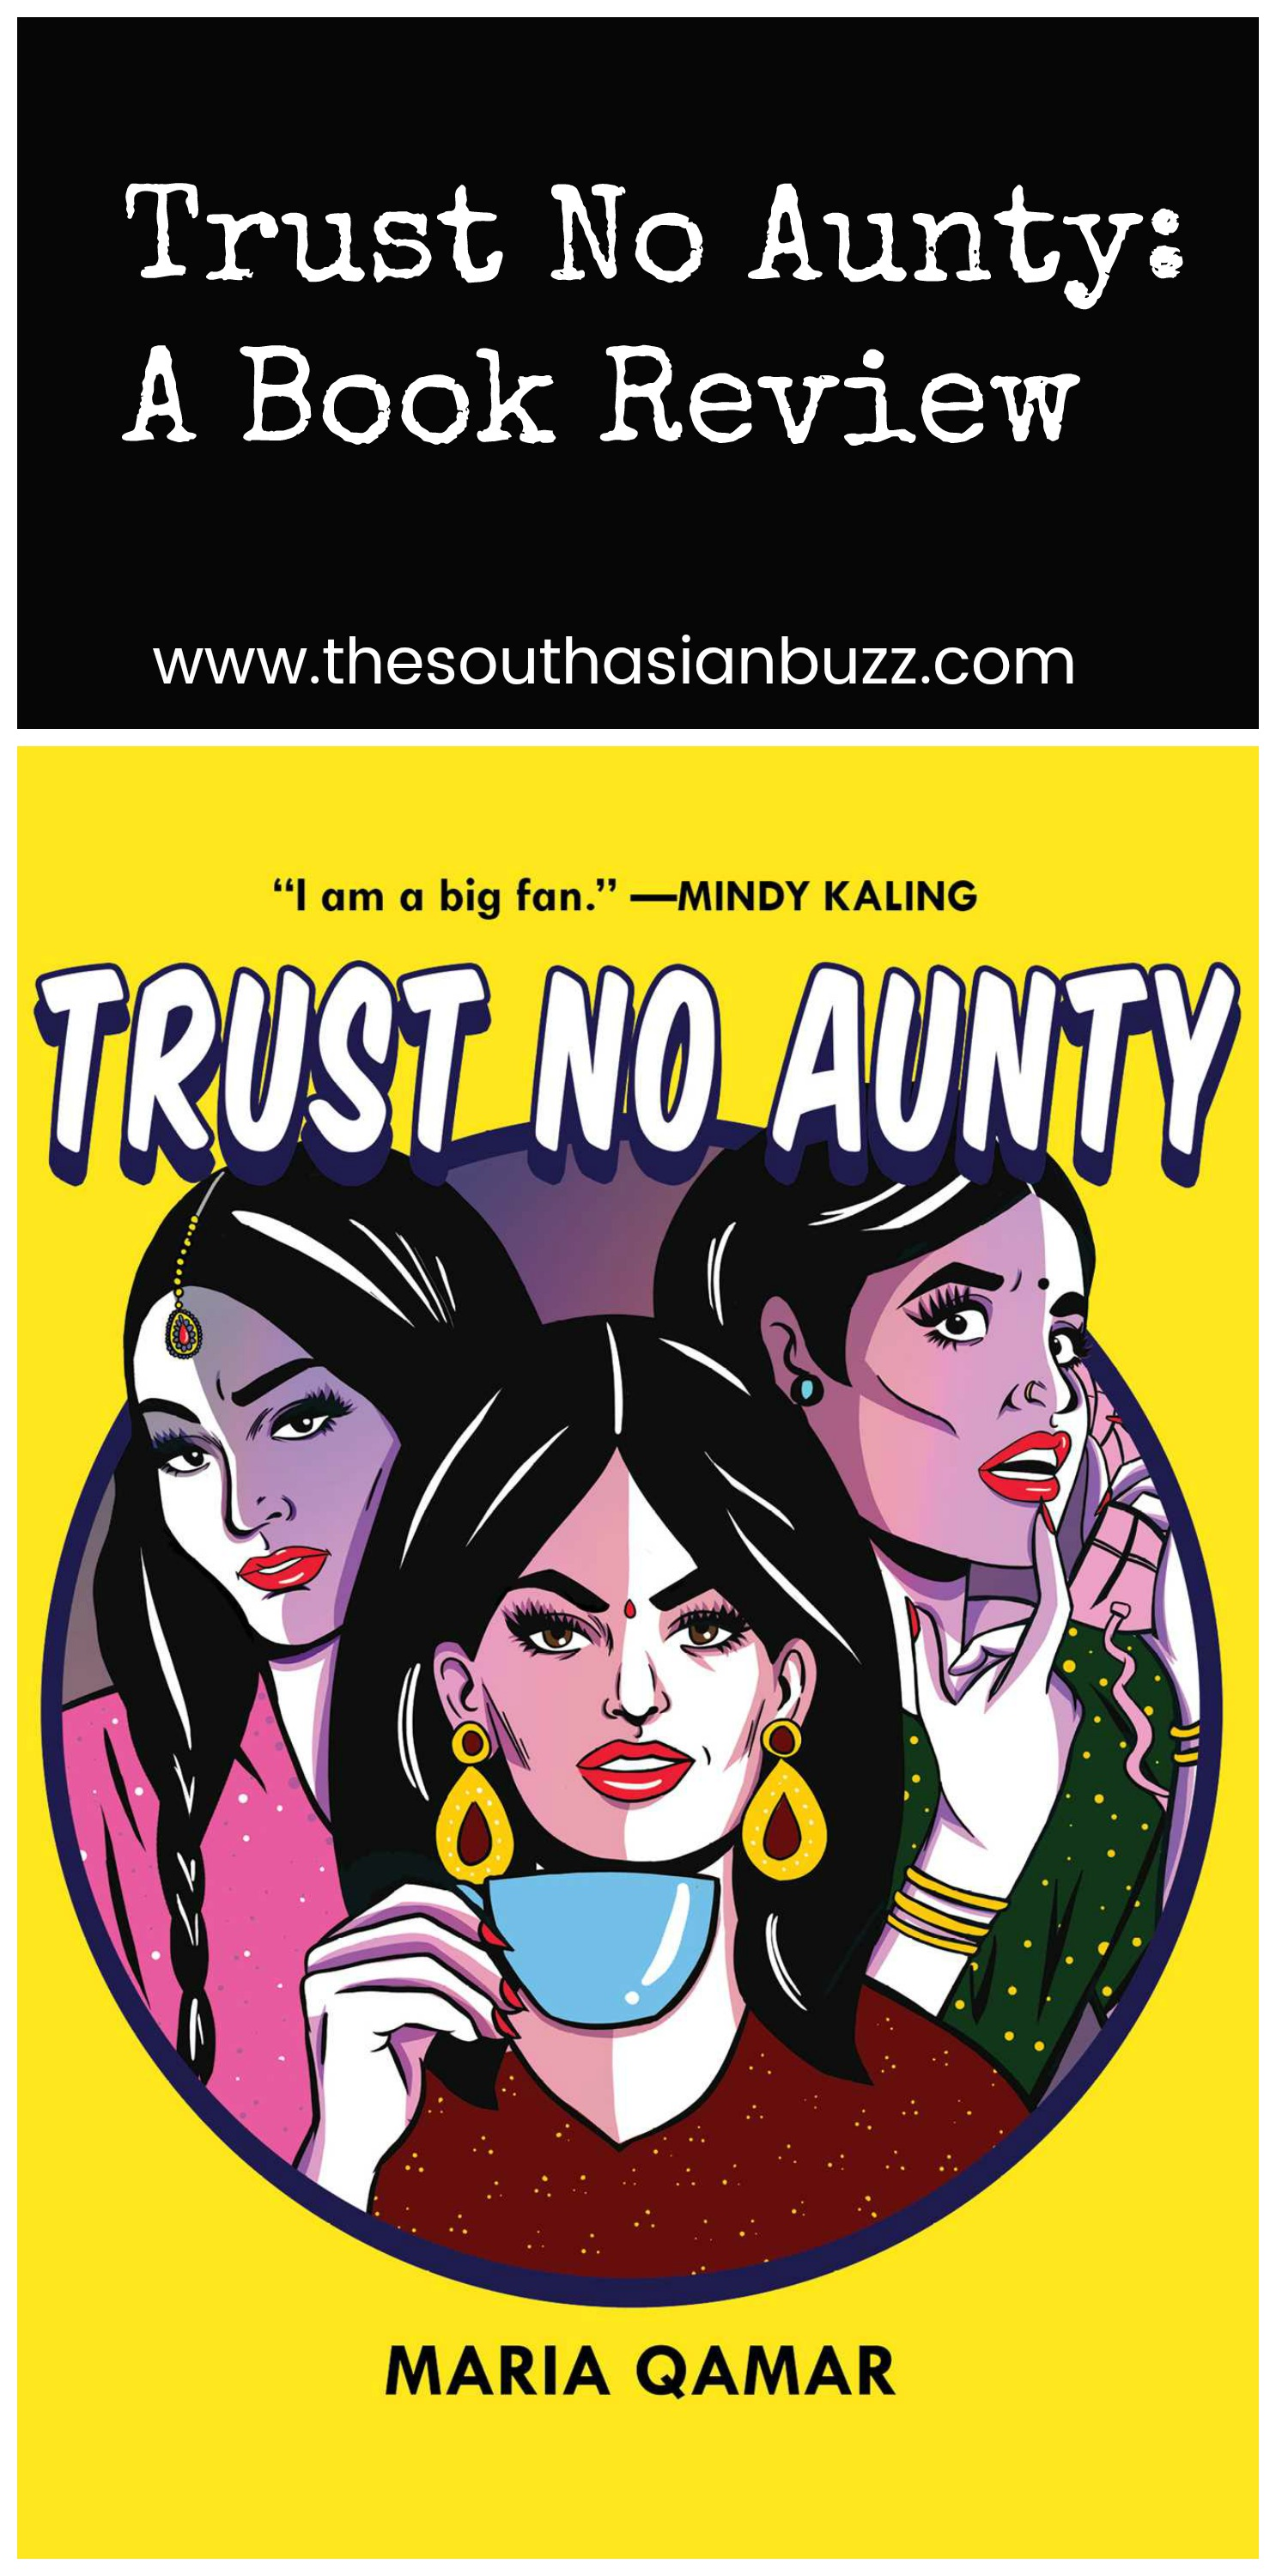 trust no aunty book review